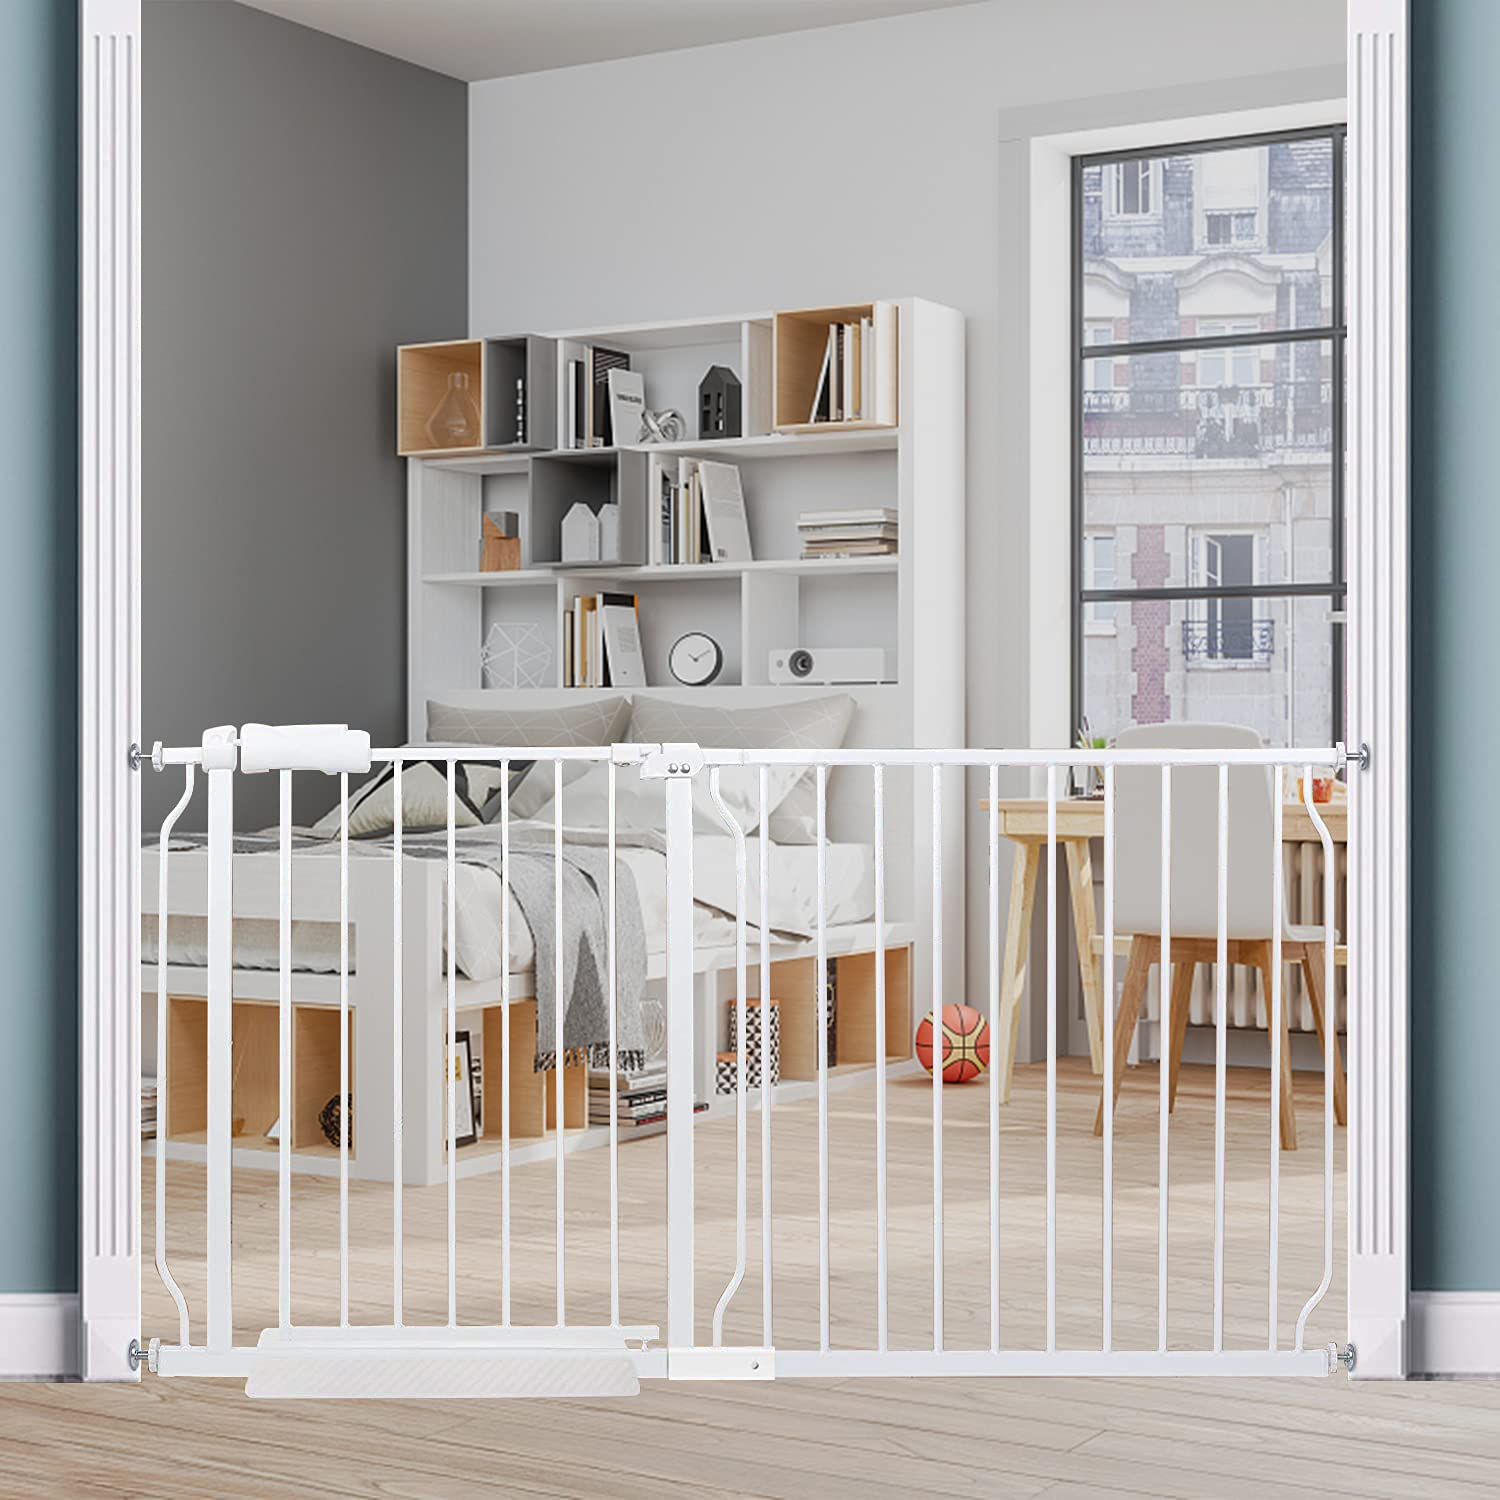 HOOOEN Extra Wide Baby Gate Extra Tall Dog Gate for Stairs Doorways White Metal Tension Child Pet Safety Gates with Pressure Mount 57.5-62 Inch